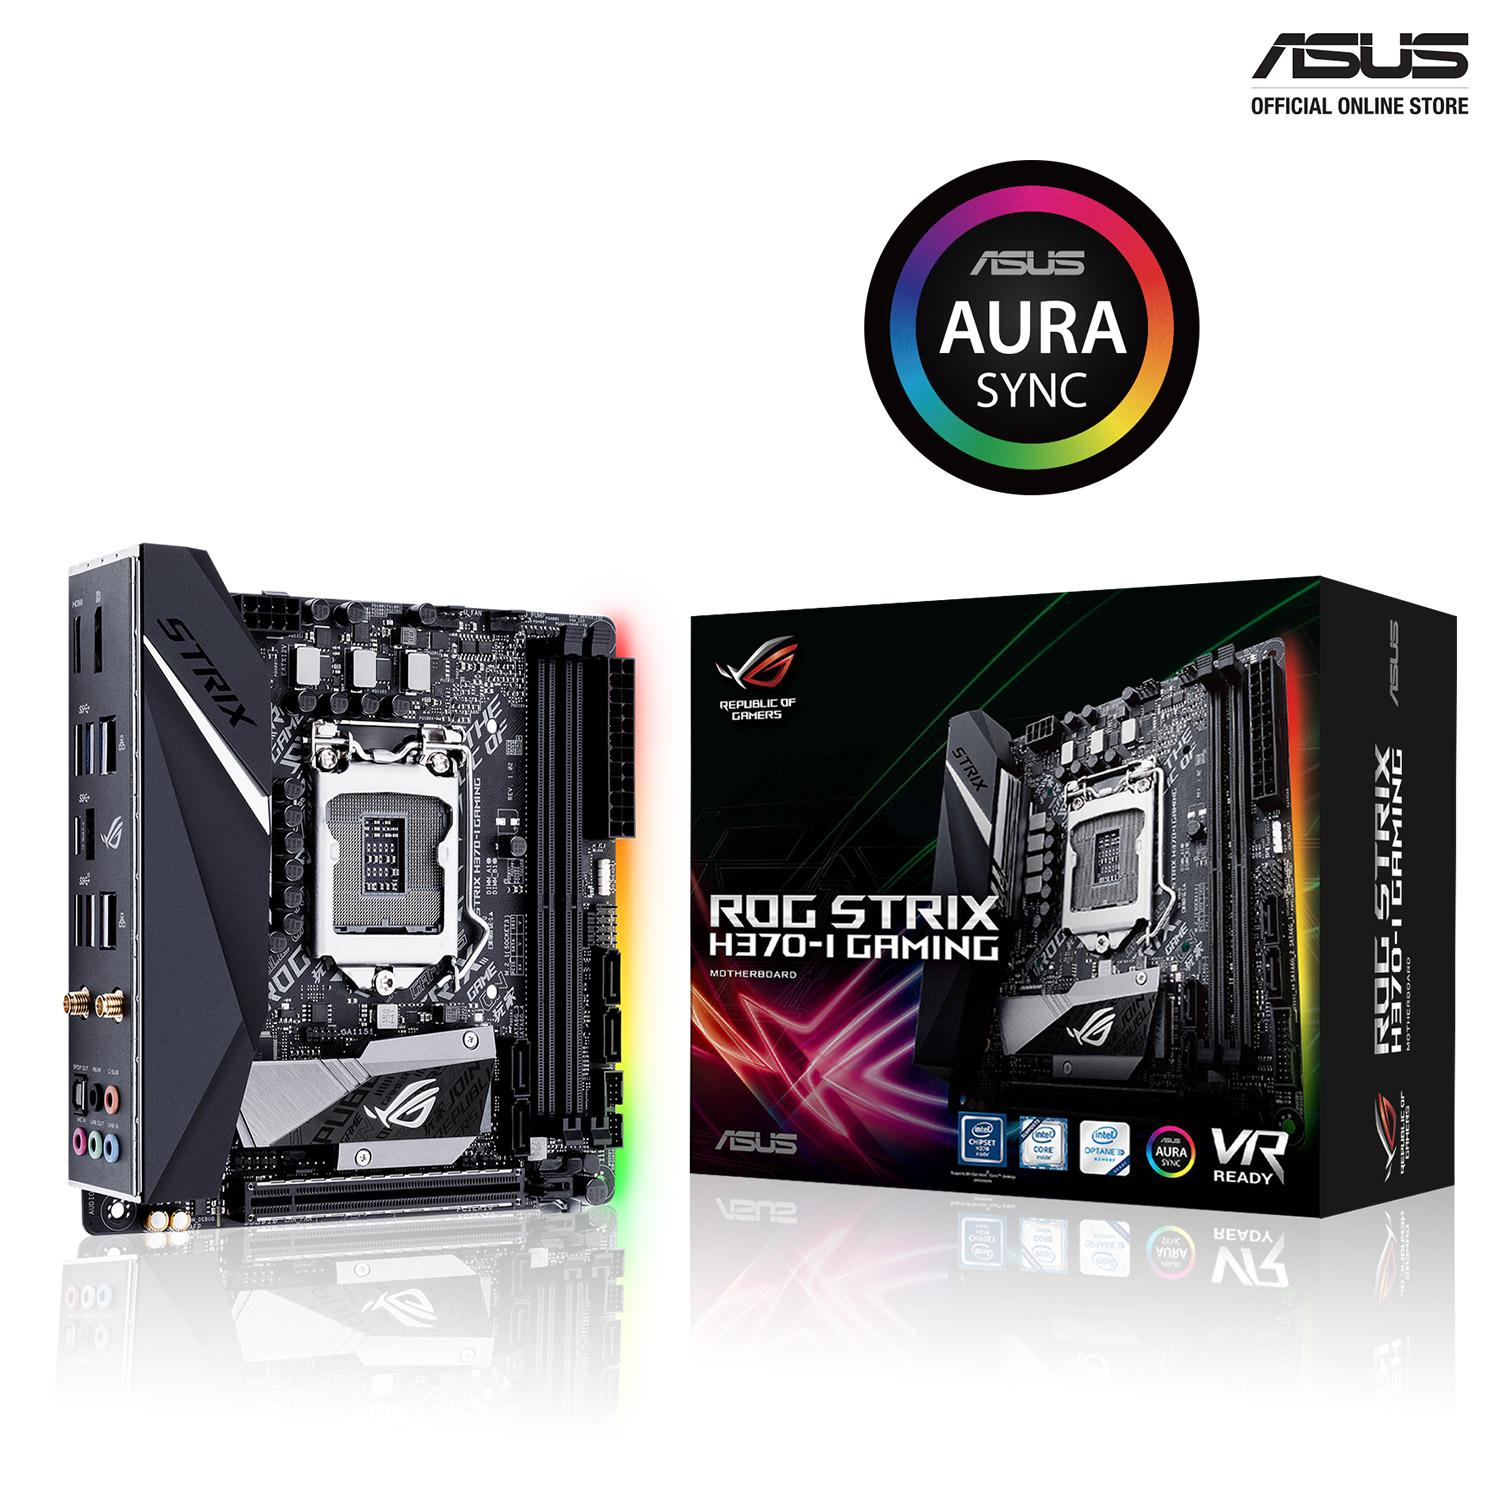 Latest Asus Motherboards Products Enjoy Huge Discounts Lazada Sg Motherboard H170 Pro Usb 31 Socket 1151 Lga Chipset Intel Rog Strix H370 I Gaming Mini Itx With Aura